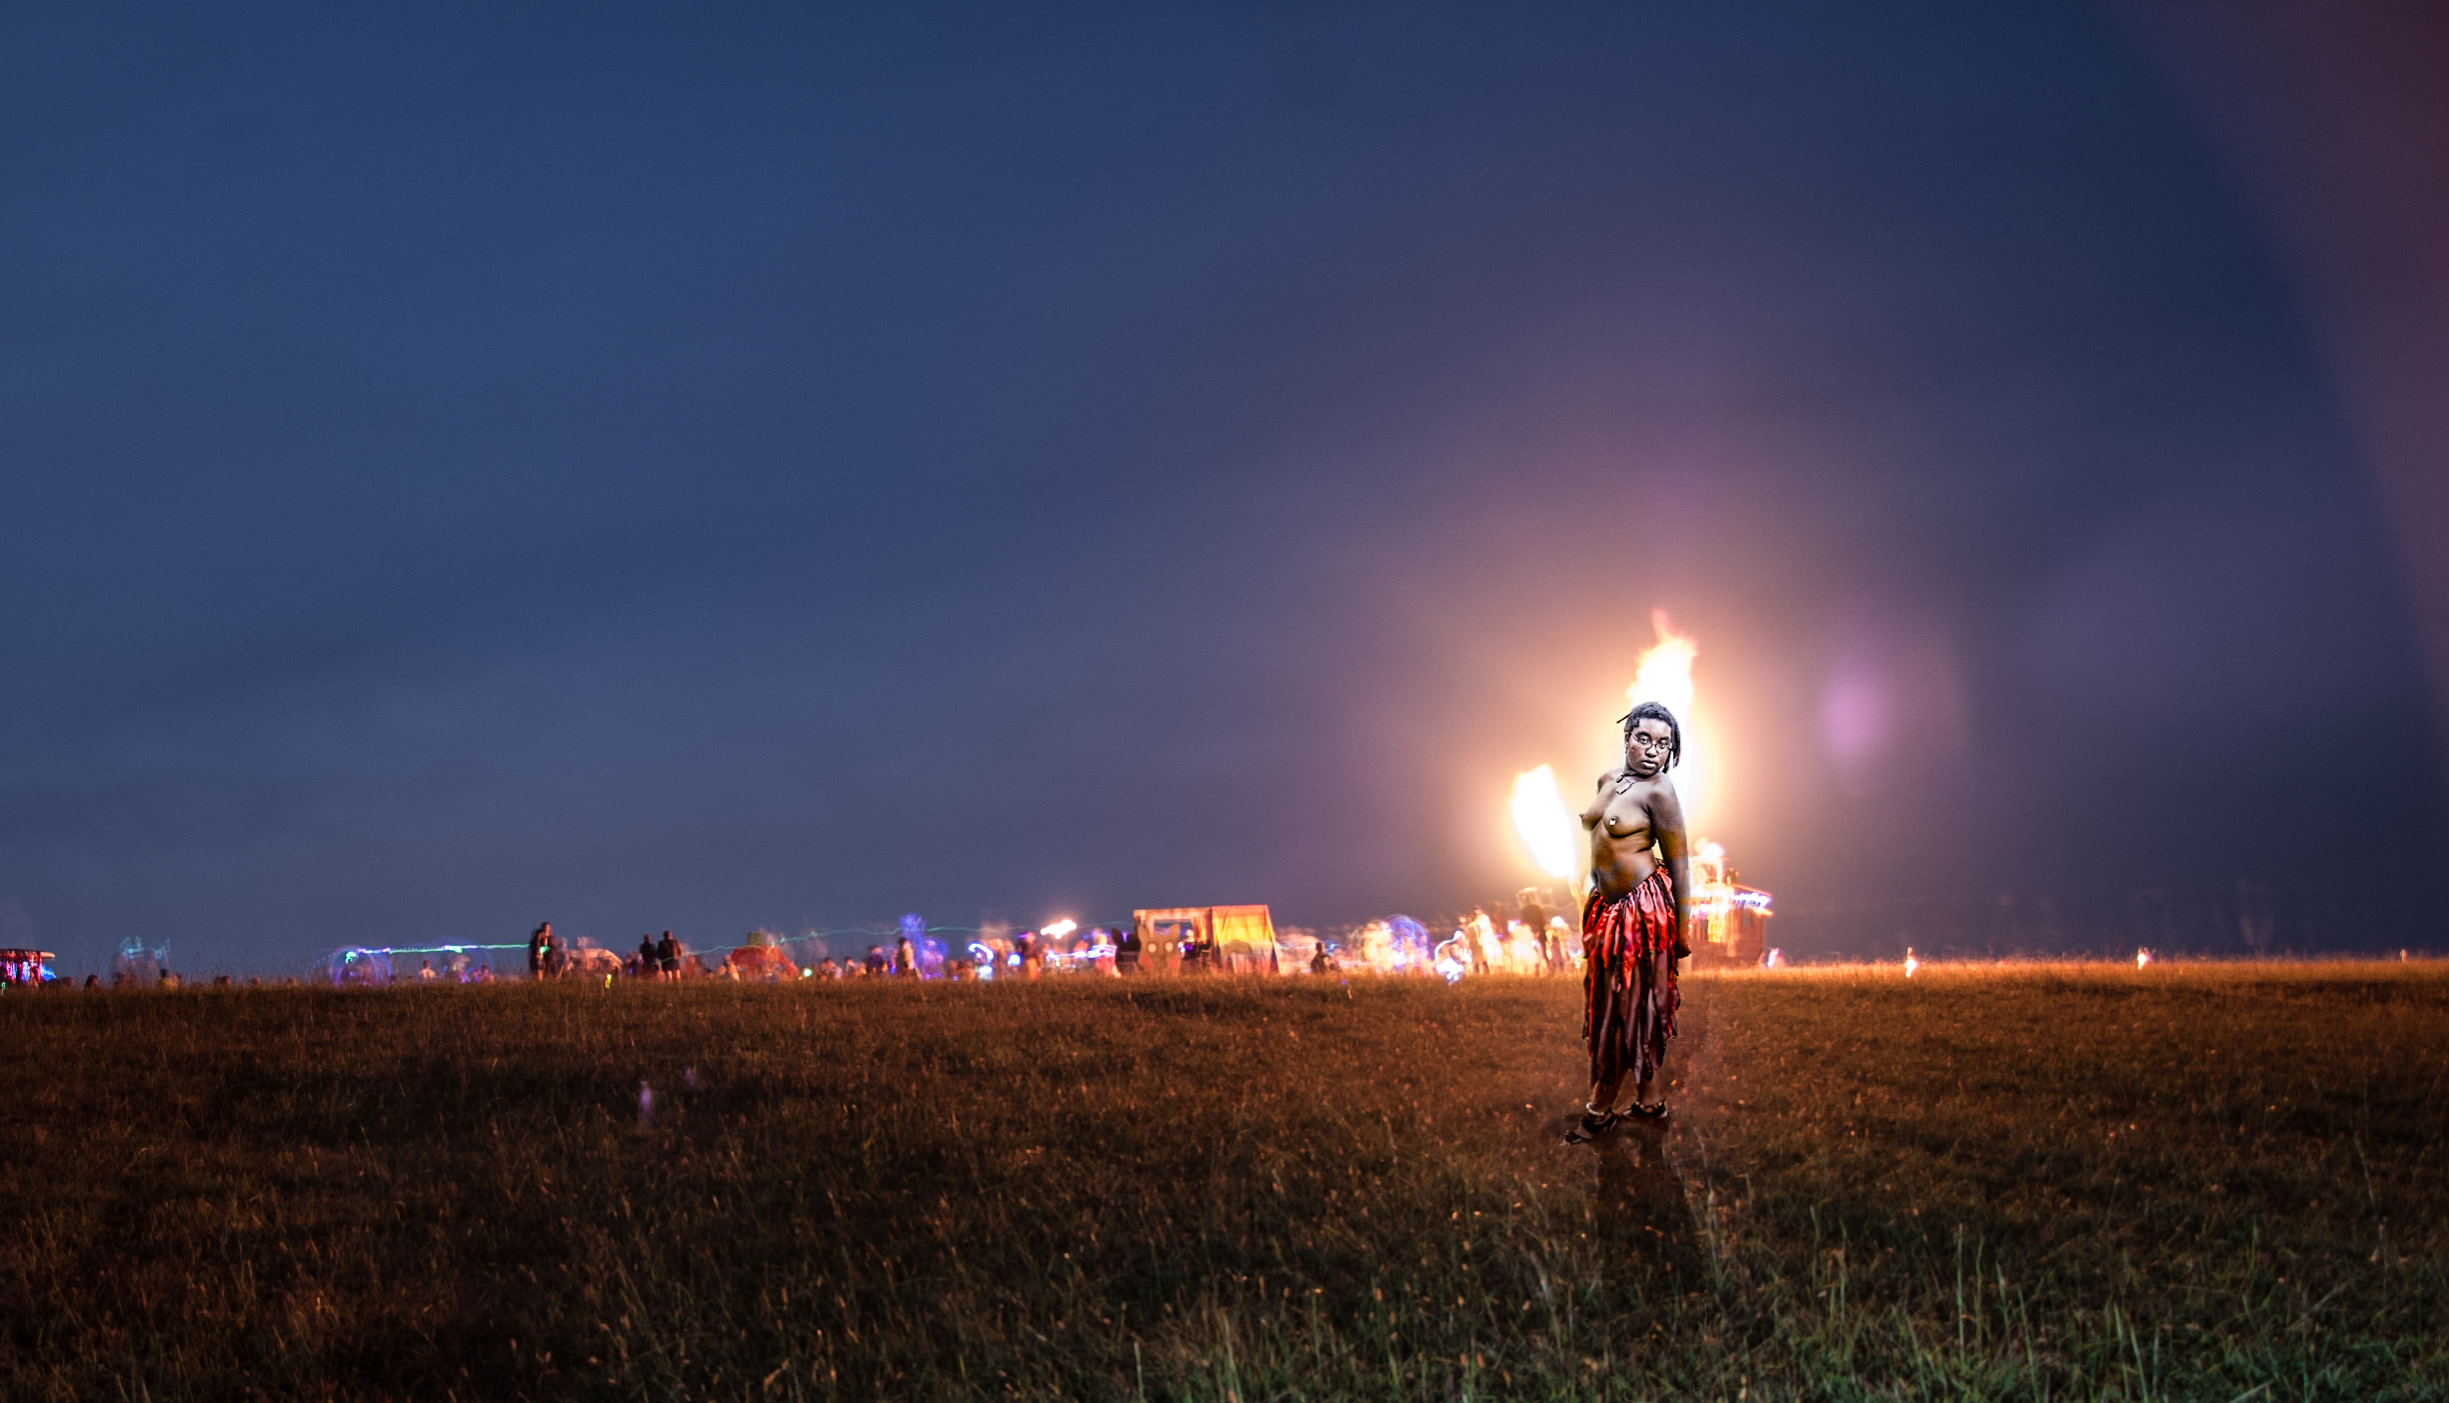 The beautiful and vibrant Nikki standing before a fire-art display at a regional Burn. This is a composite of two photos from two different burns.